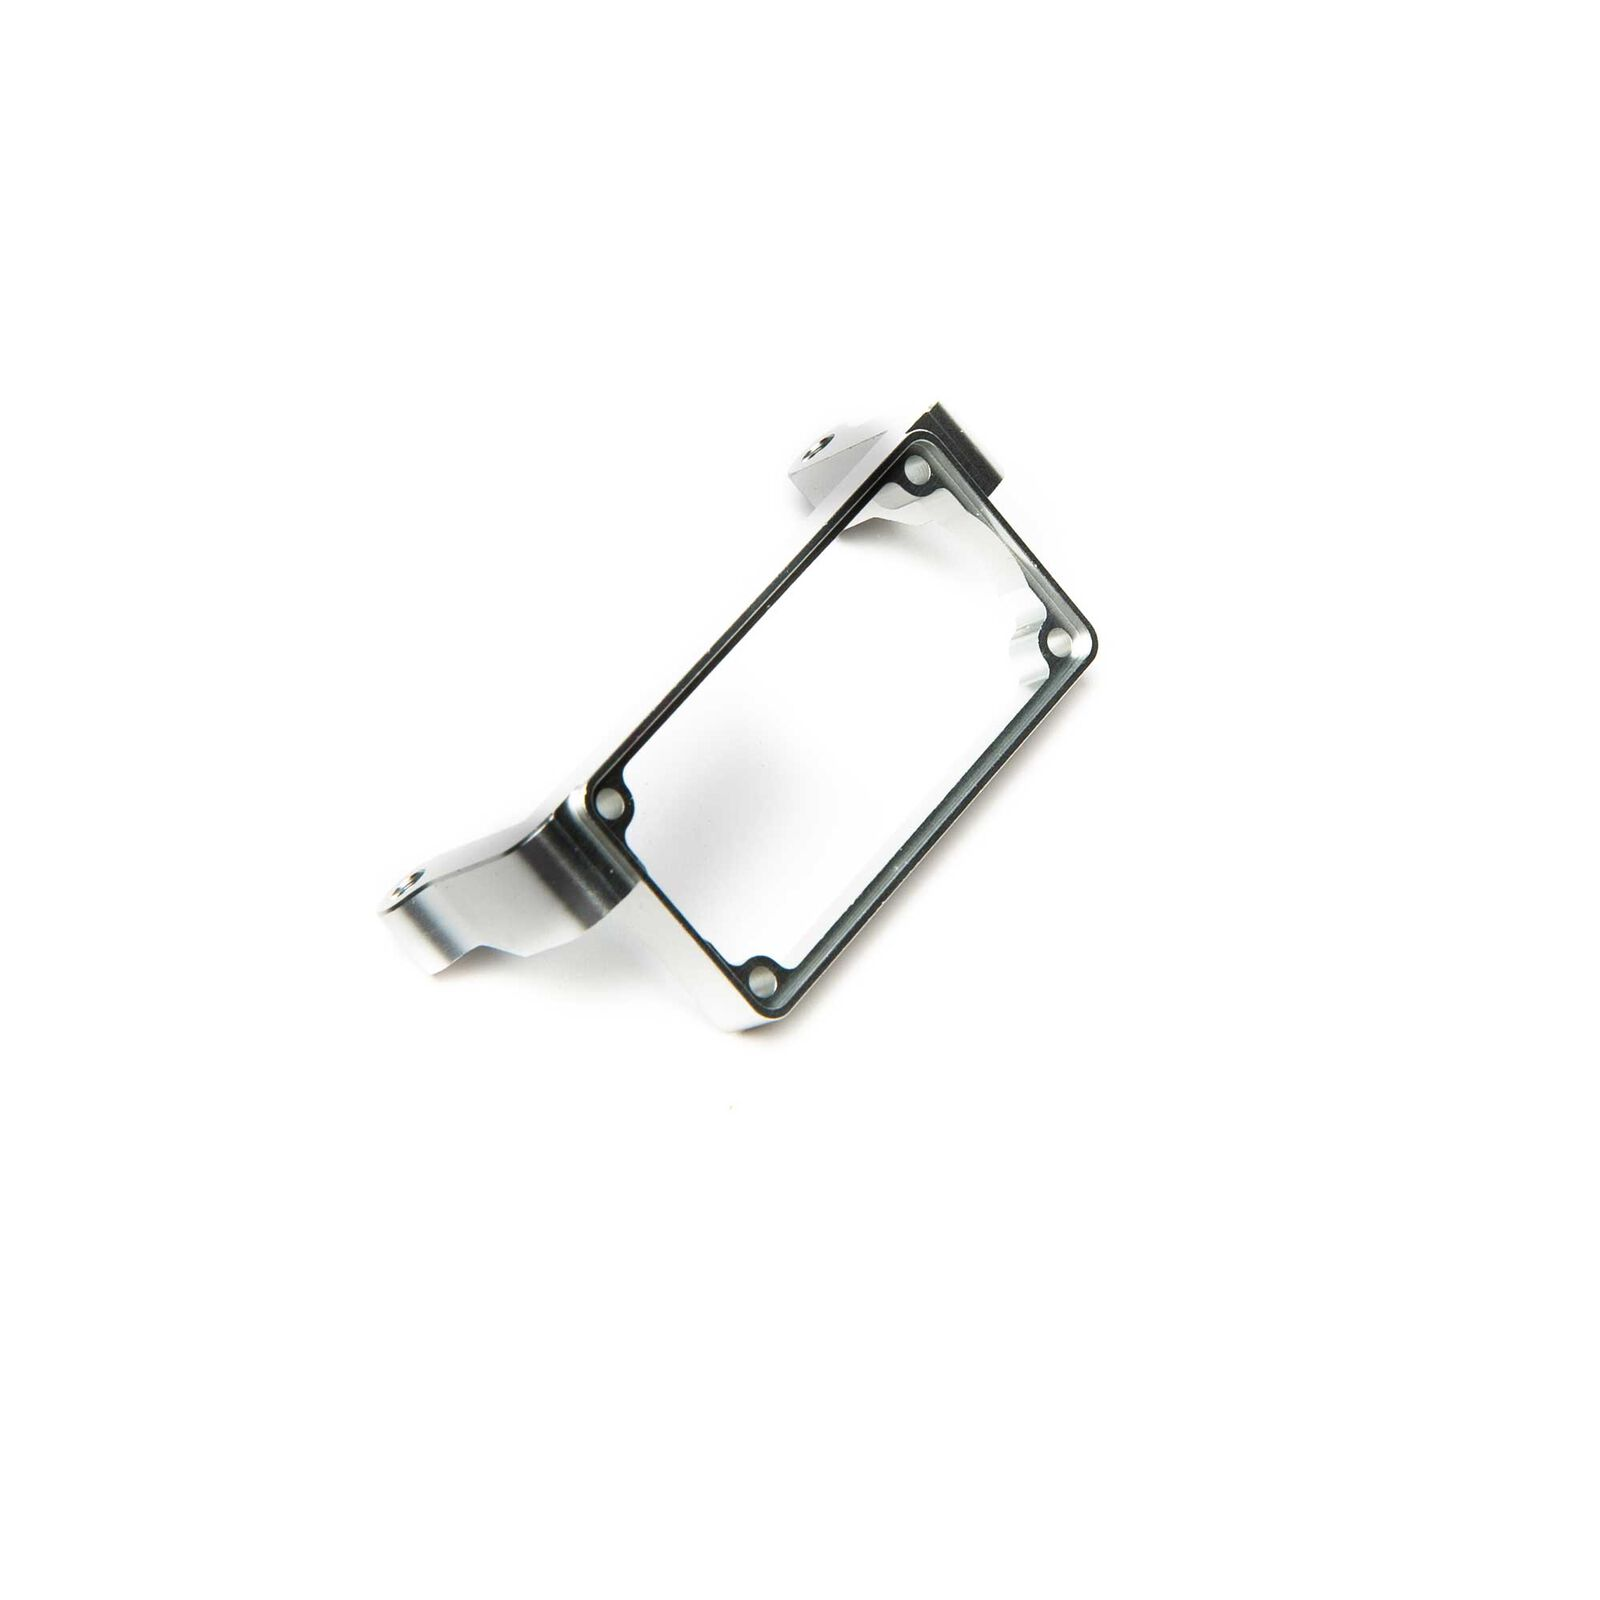 6240 Rx Chassis Mount: TLR22 5.0